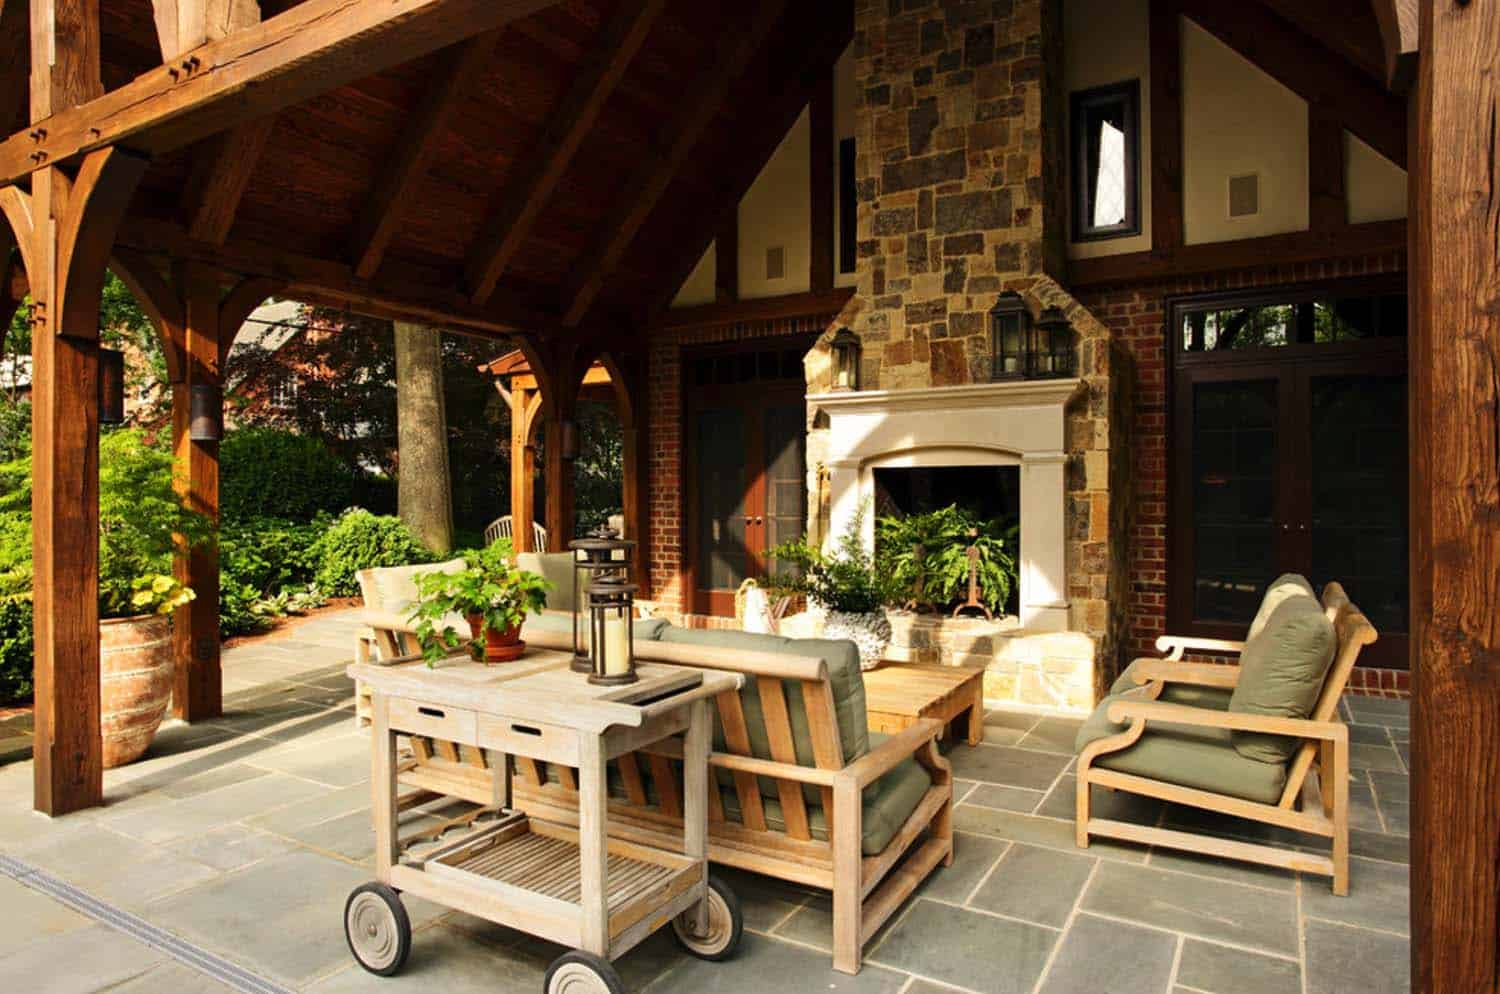 44 Traditional outdoor patio designs to capture your ... on Covered Patio Design Ideas id=92130